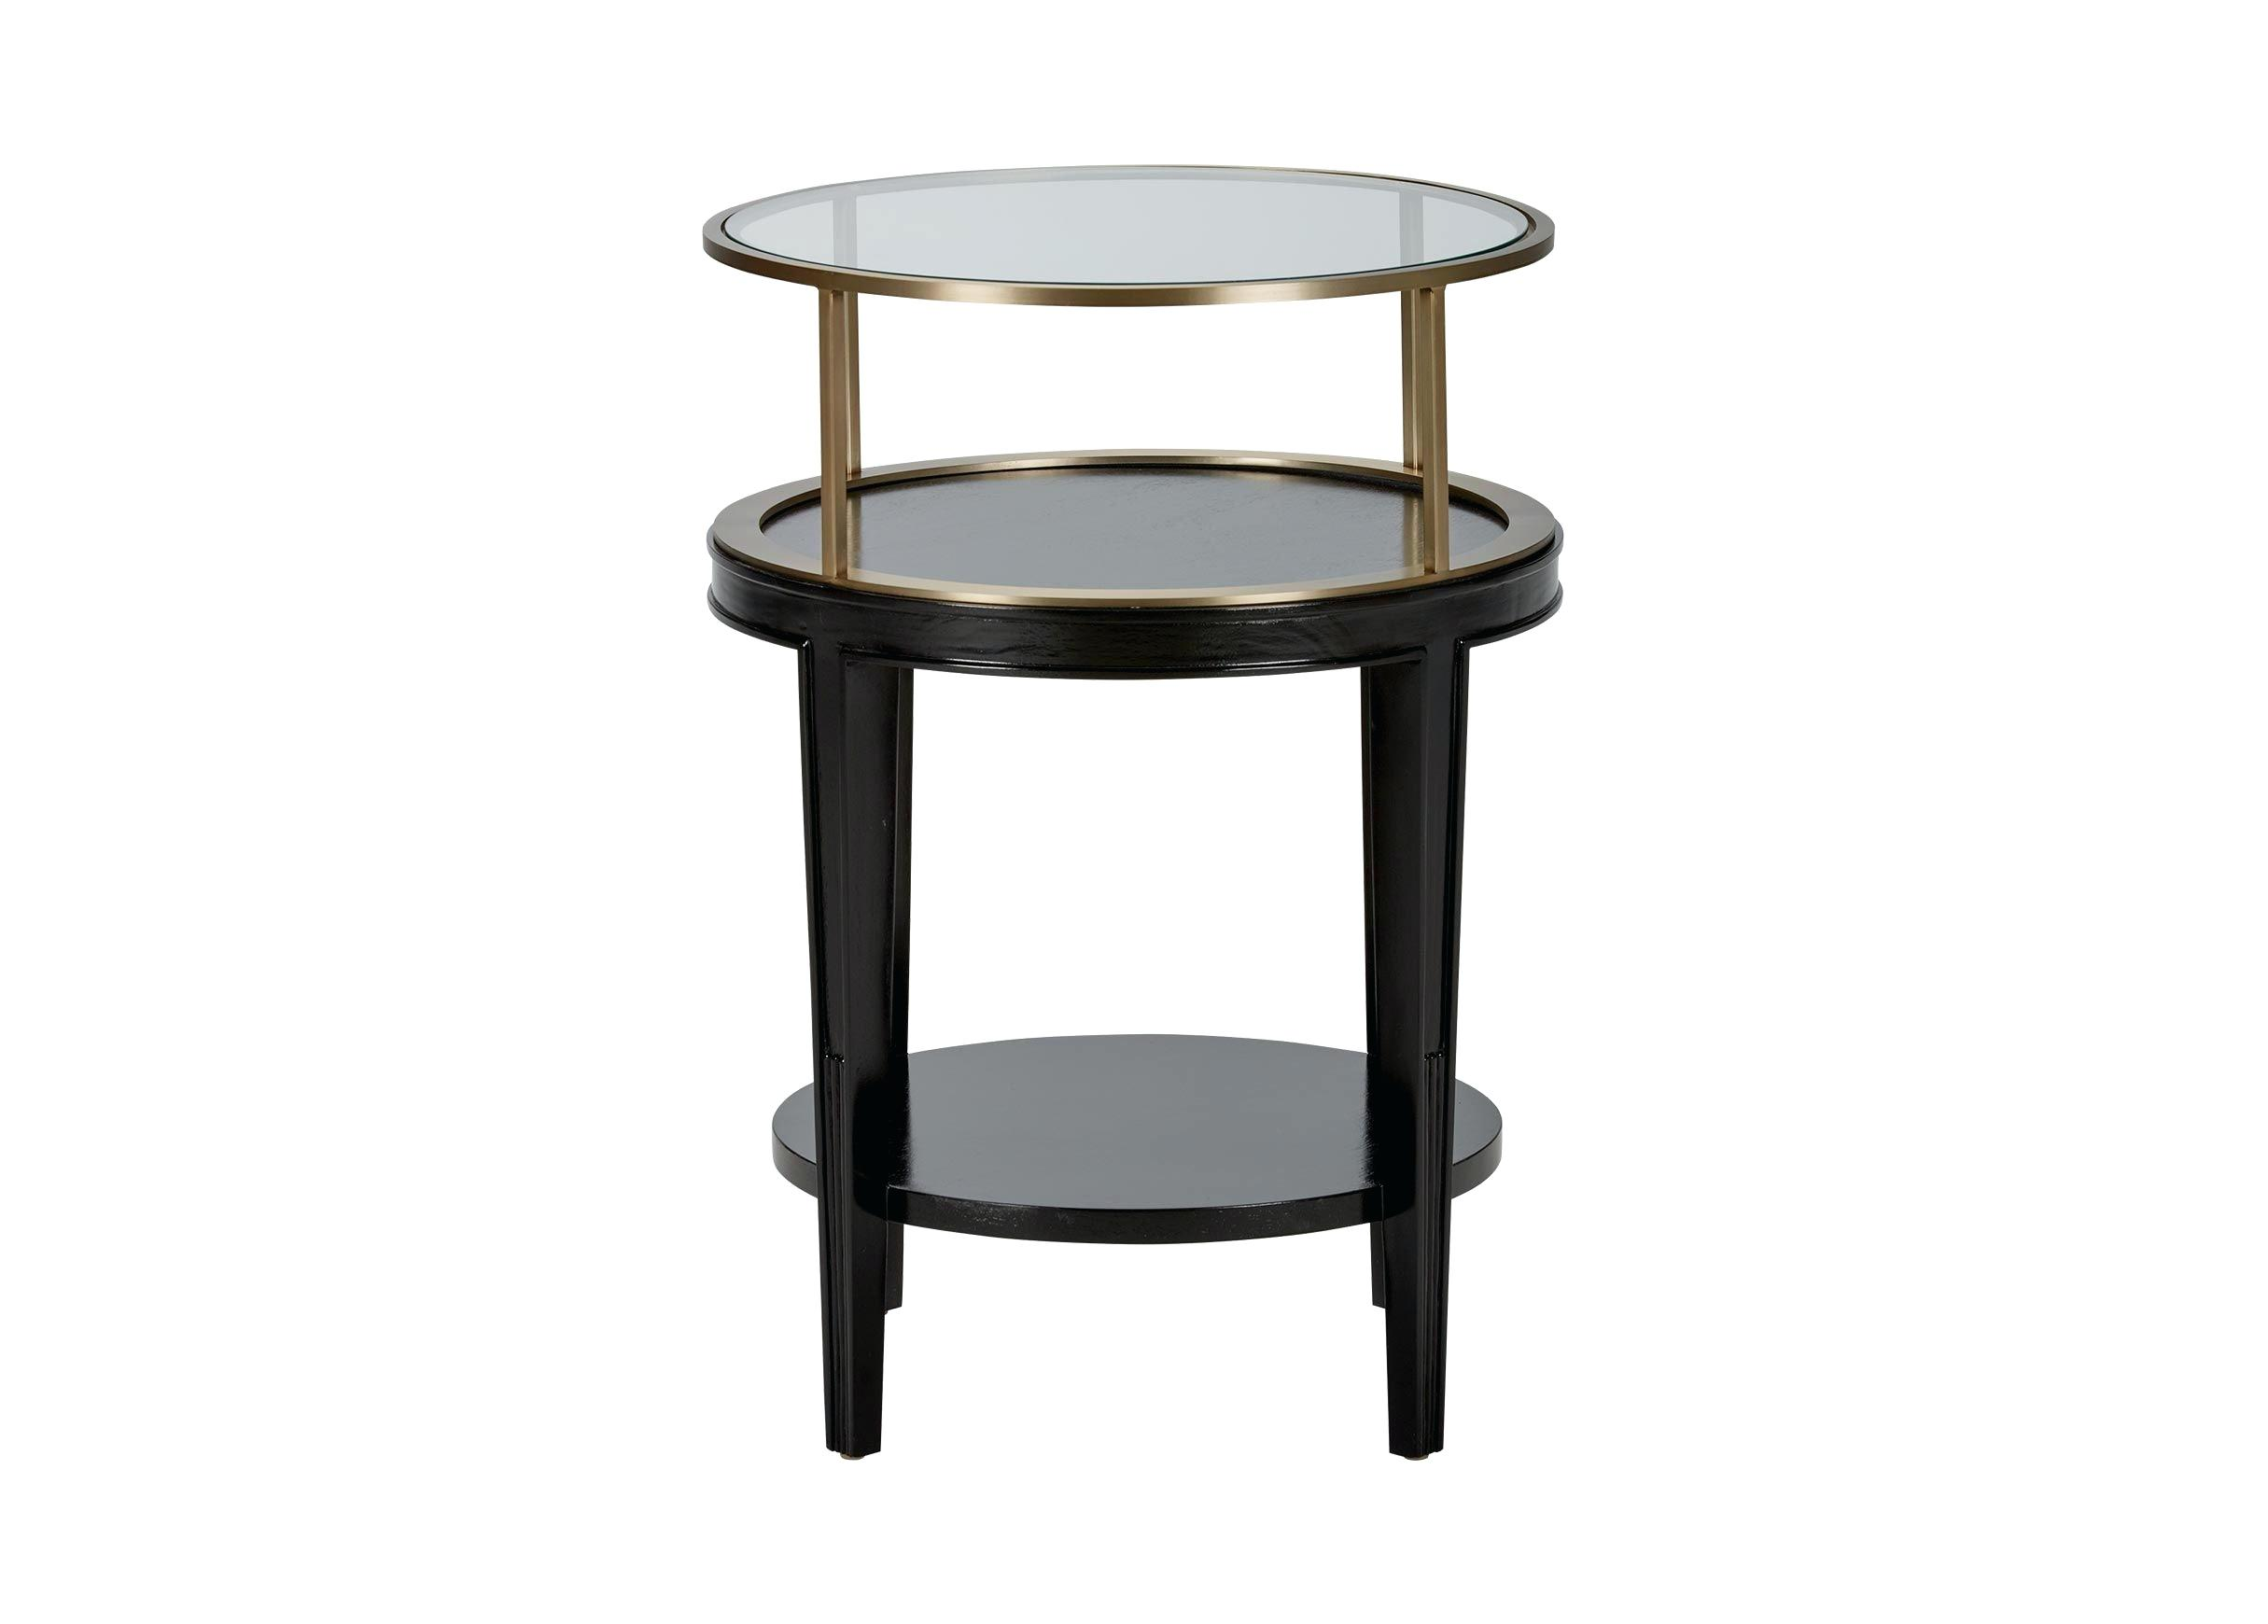 black accent tables for antique natural modena table with chairs winsome daniel drawer finish metal and wood round kitchen gorgeous full size small patio set gold knobs designer